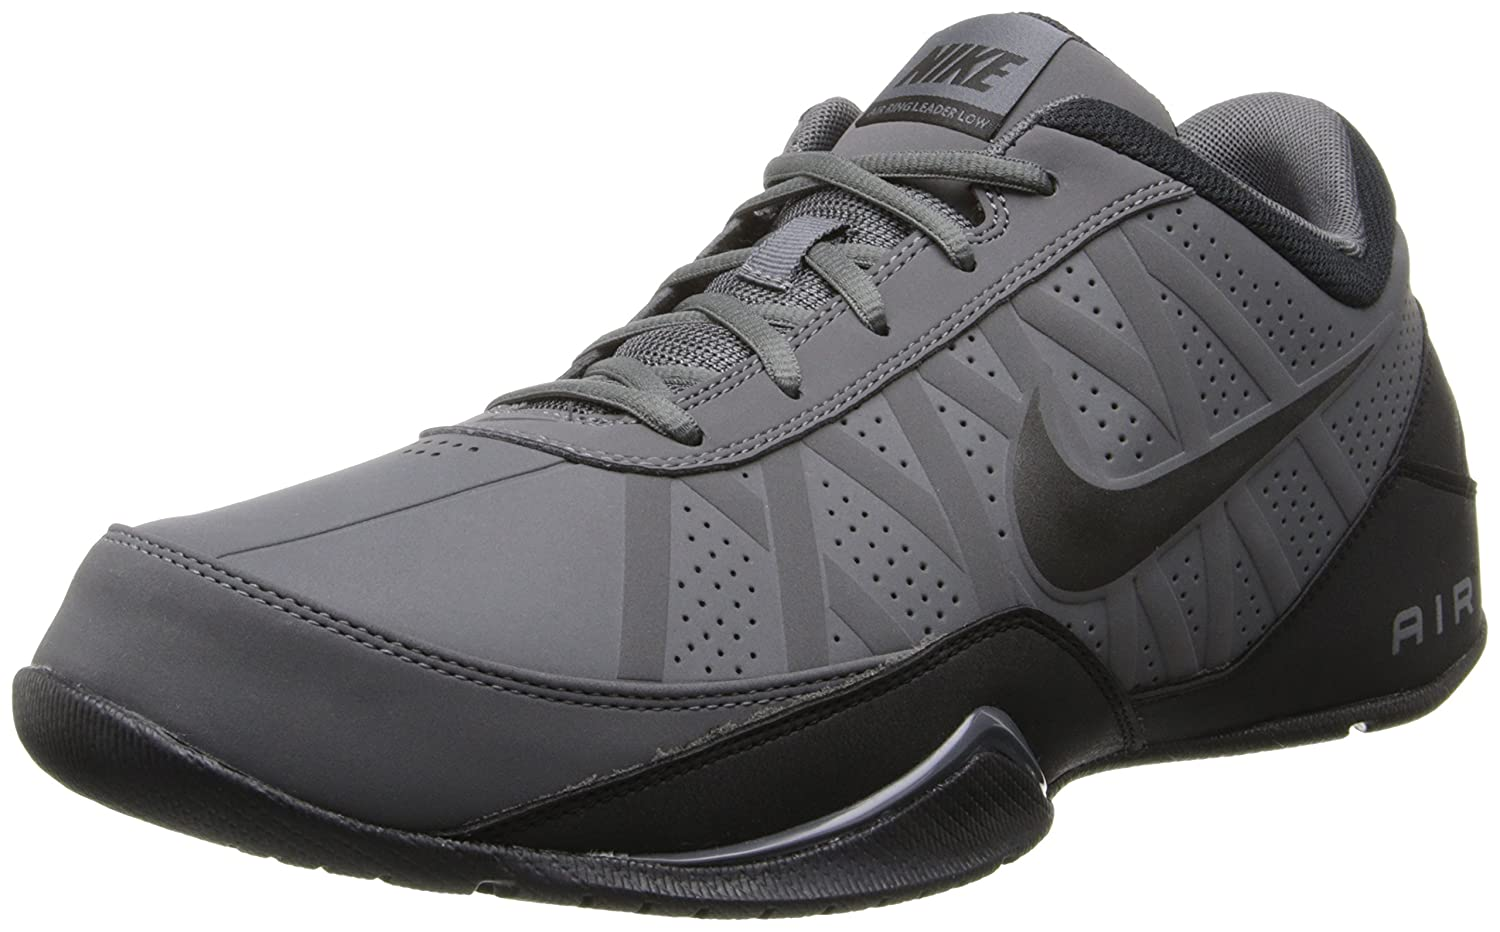 on sale 13a0f 30887 Amazon.com   Nike Men s Air Ring Leader Low Basketball Shoe   Basketball